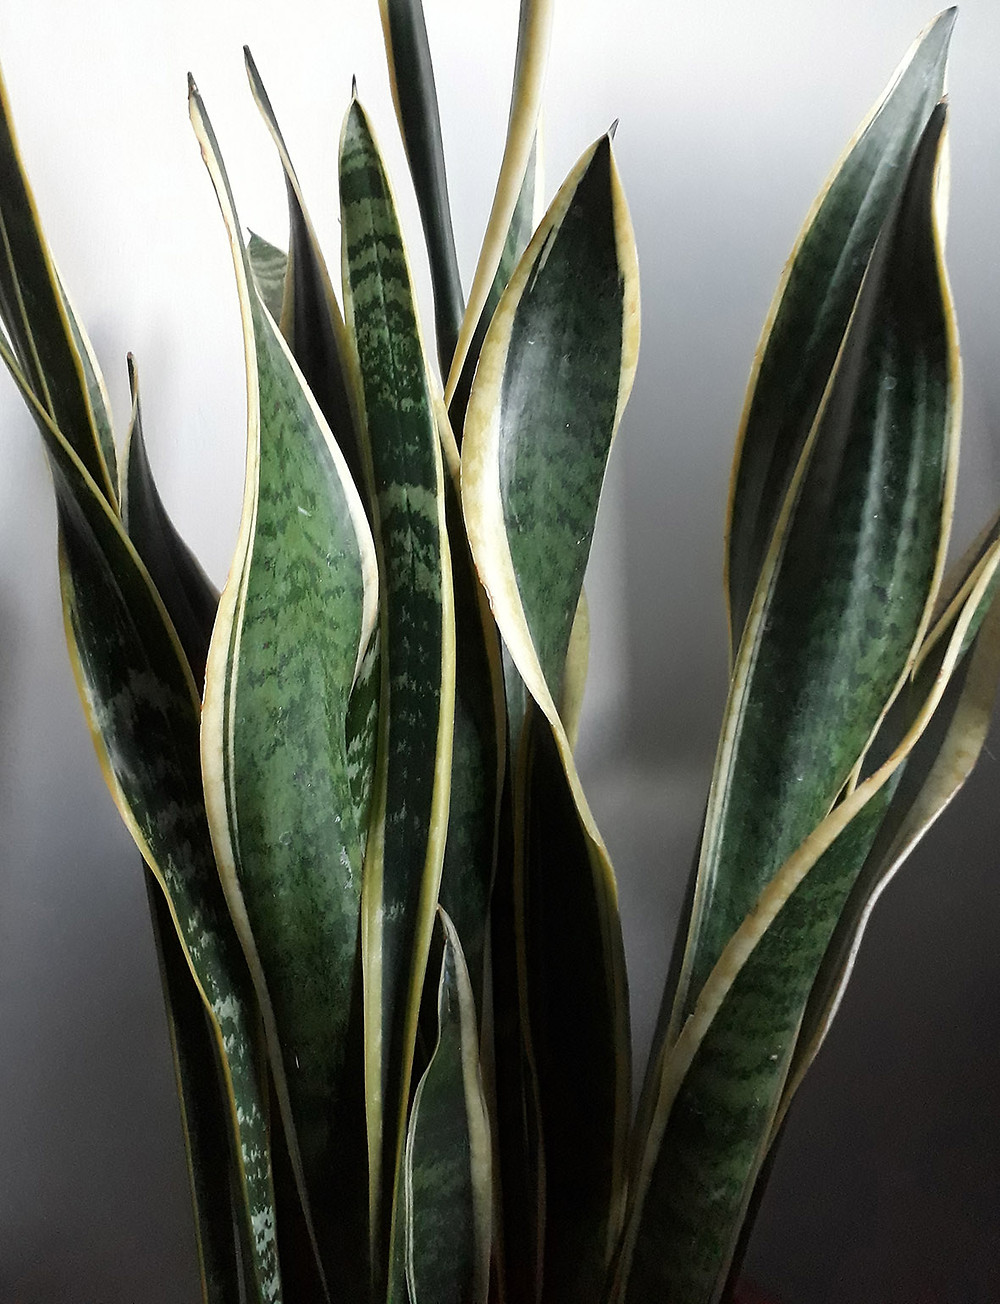 House plant Sansevieria trifasciata. Plants are good for us in so many ways and keeping some in the home needn't be a chore. Health and well being